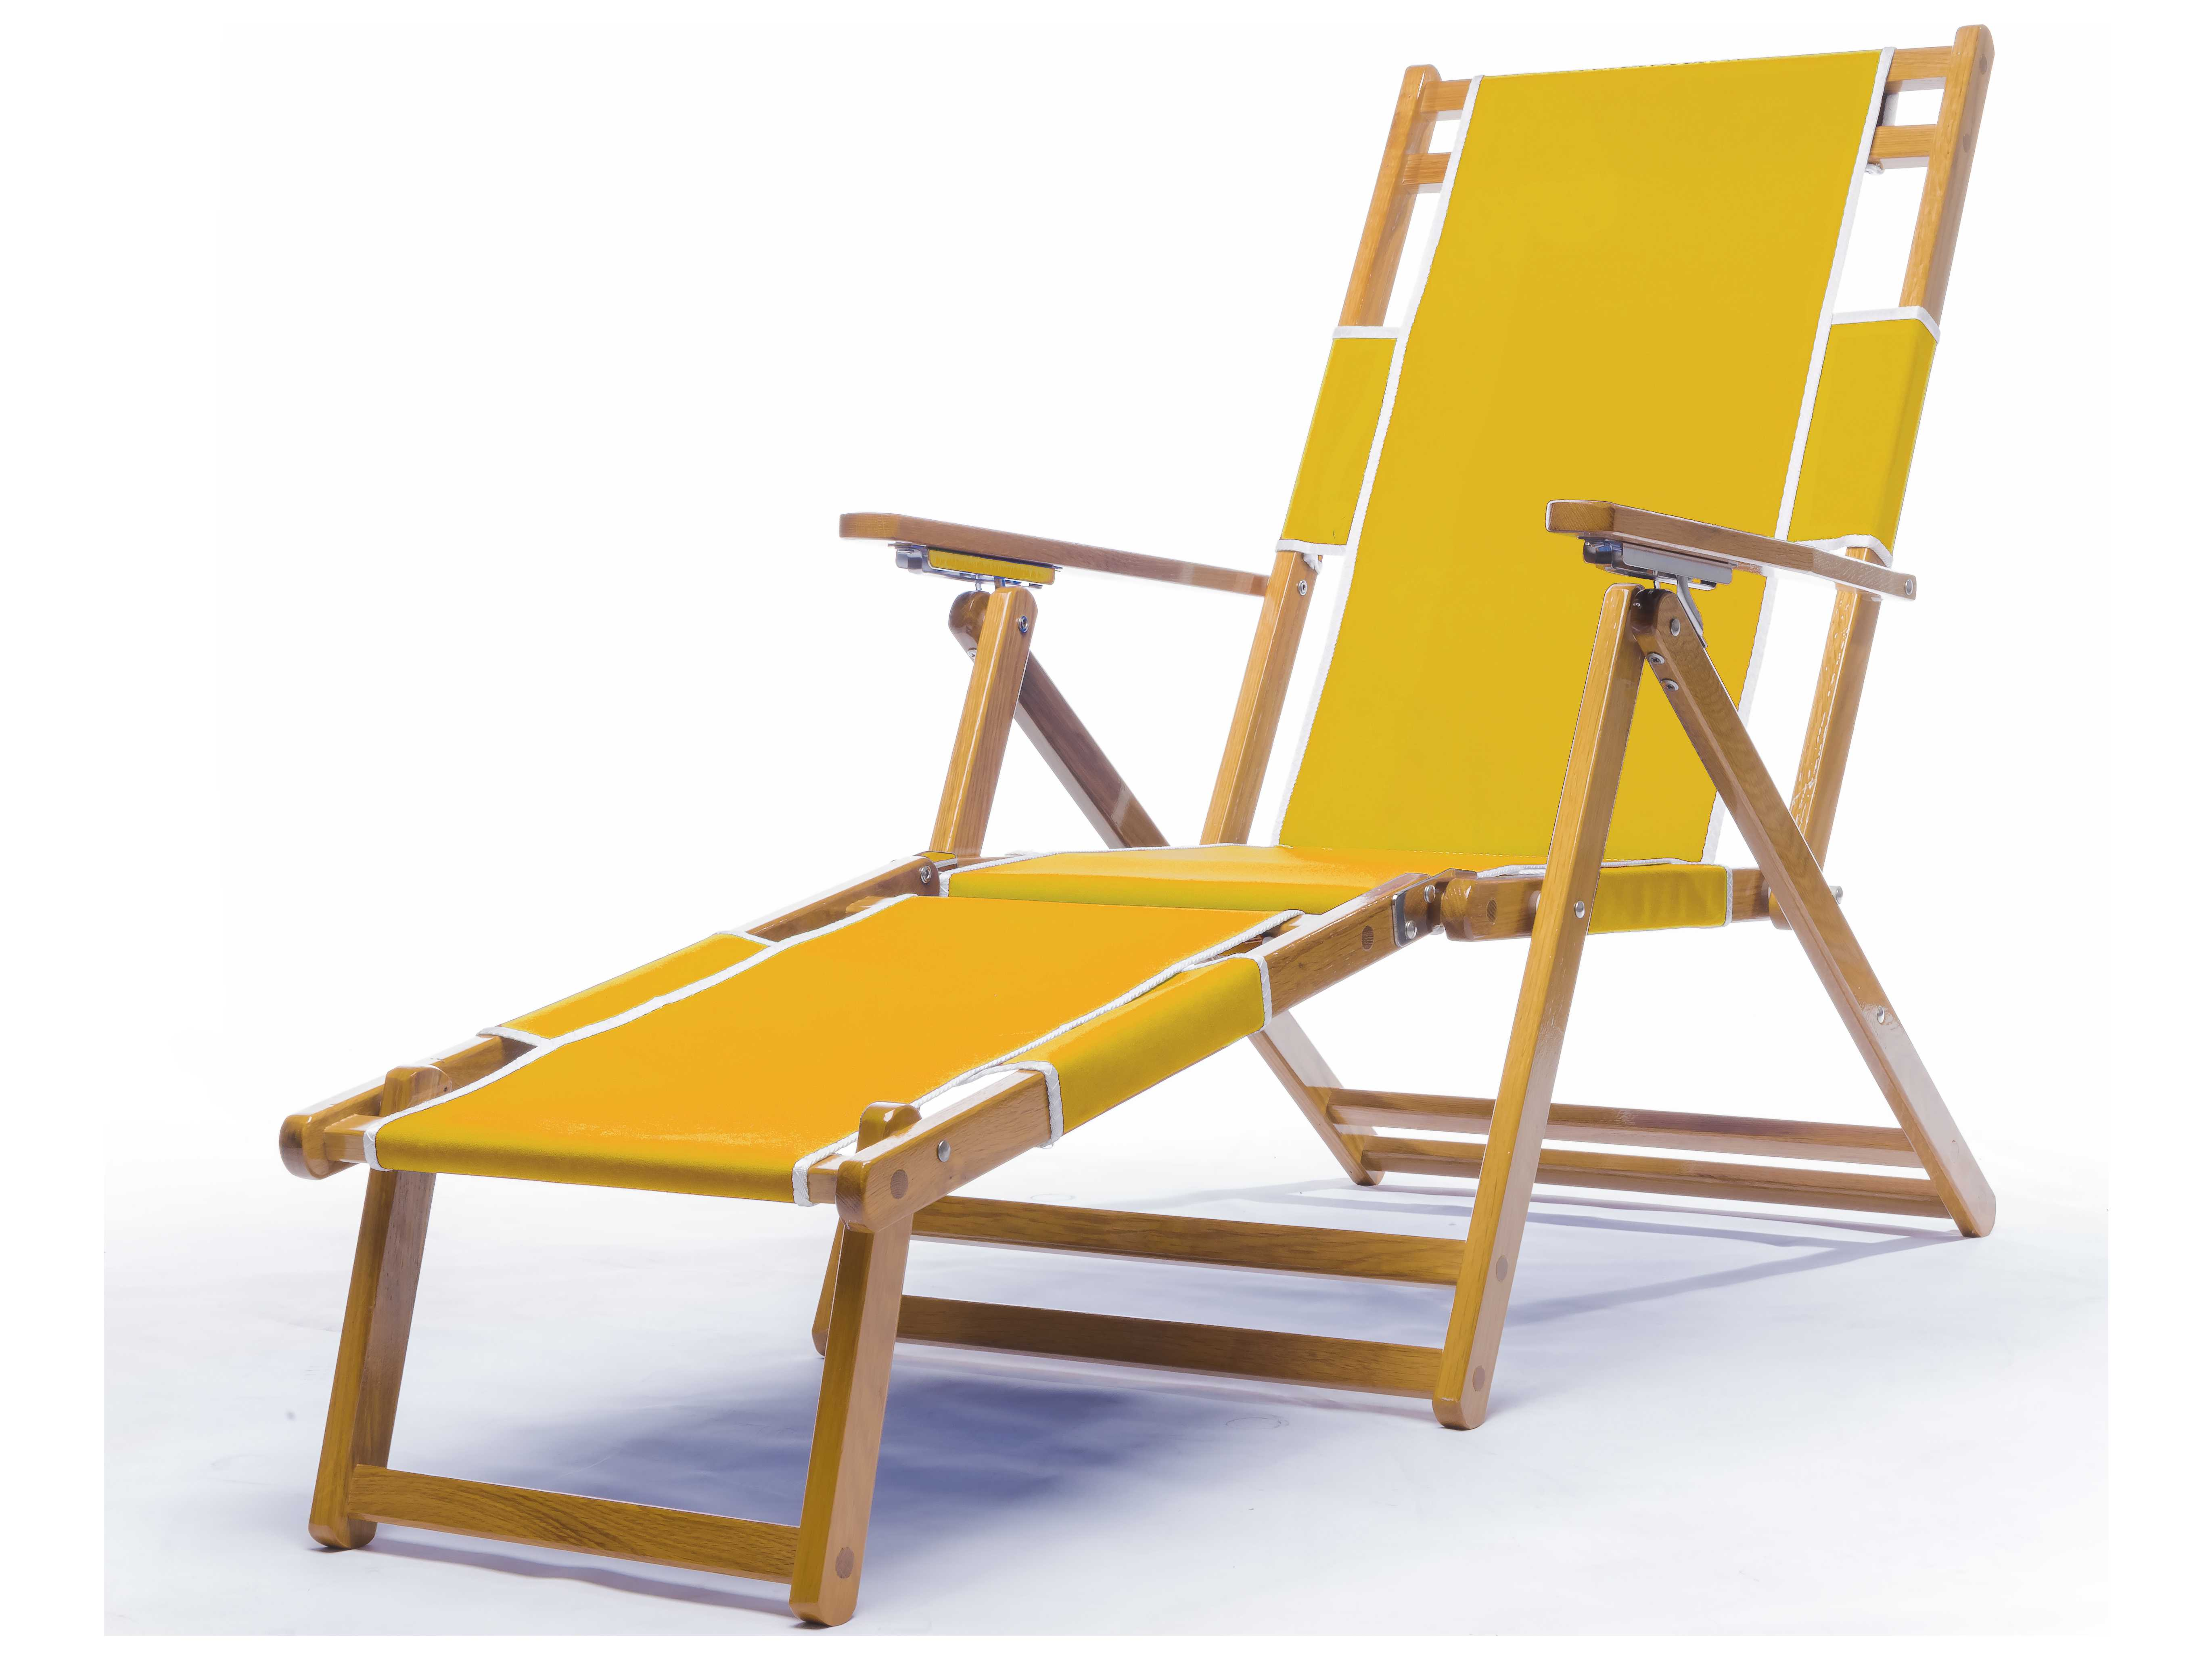 Frankford Umbrellas Wooden Beach Lounge Chair with Footrest